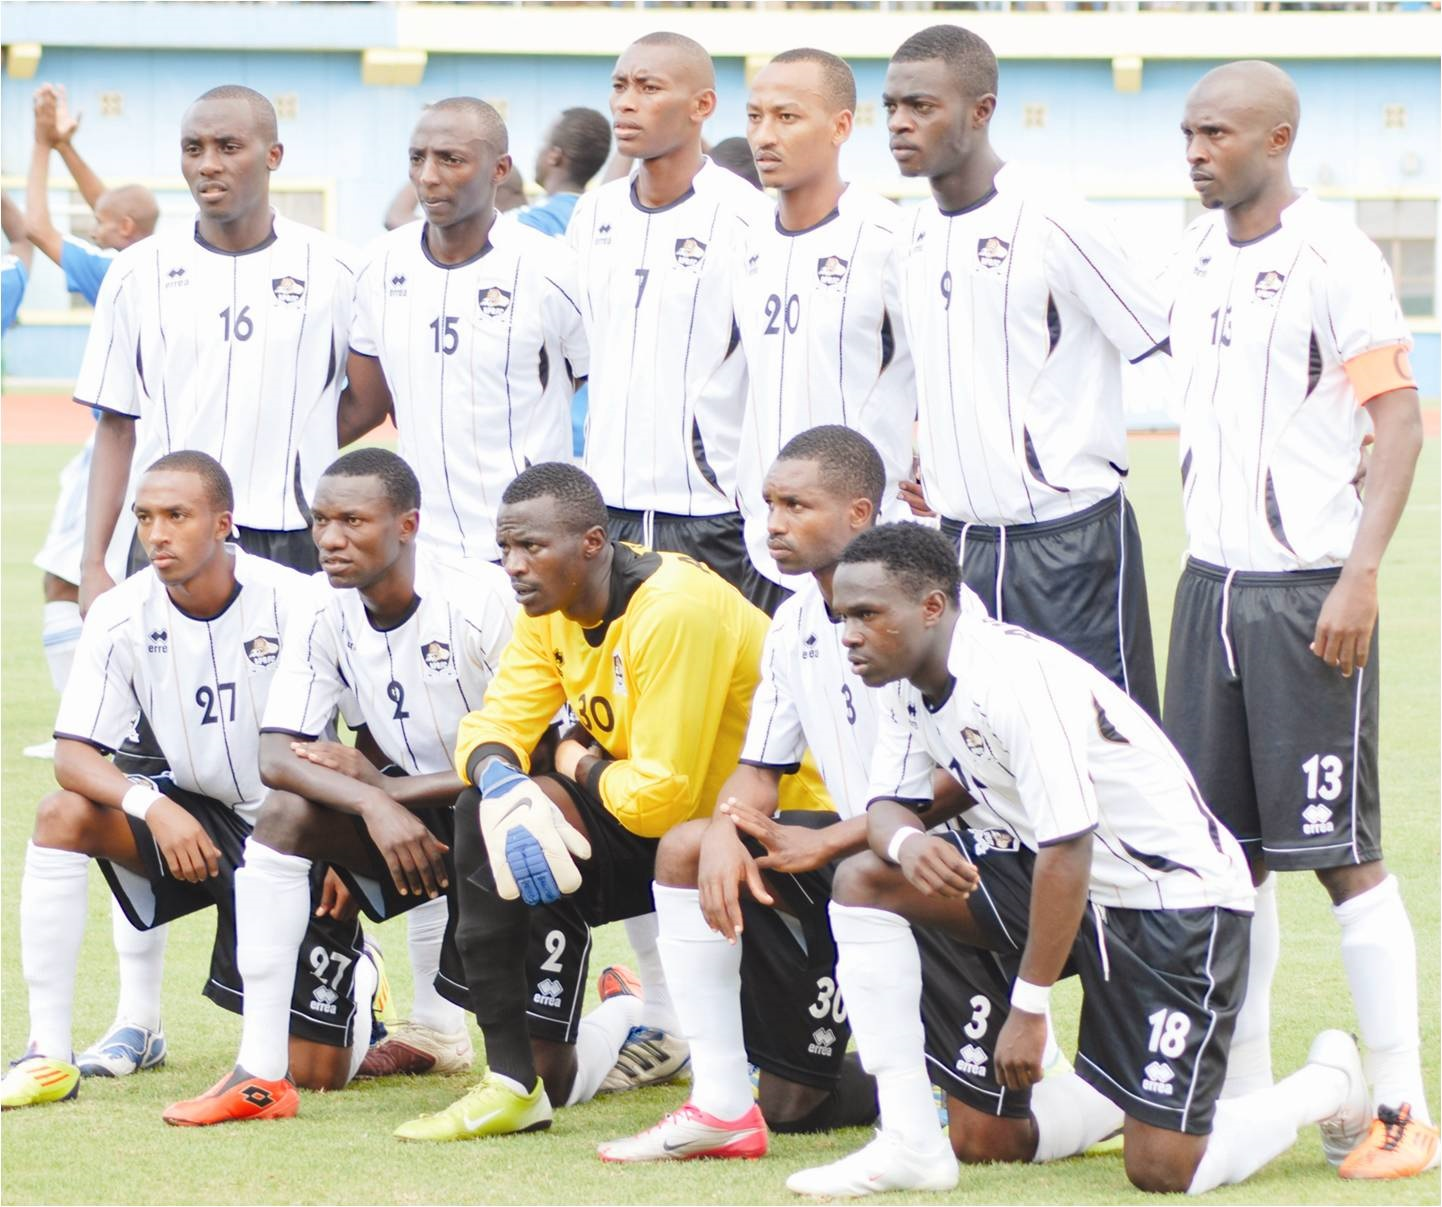 Rwanda-13-errea-away-kit-white-black-white-line-up.jpg